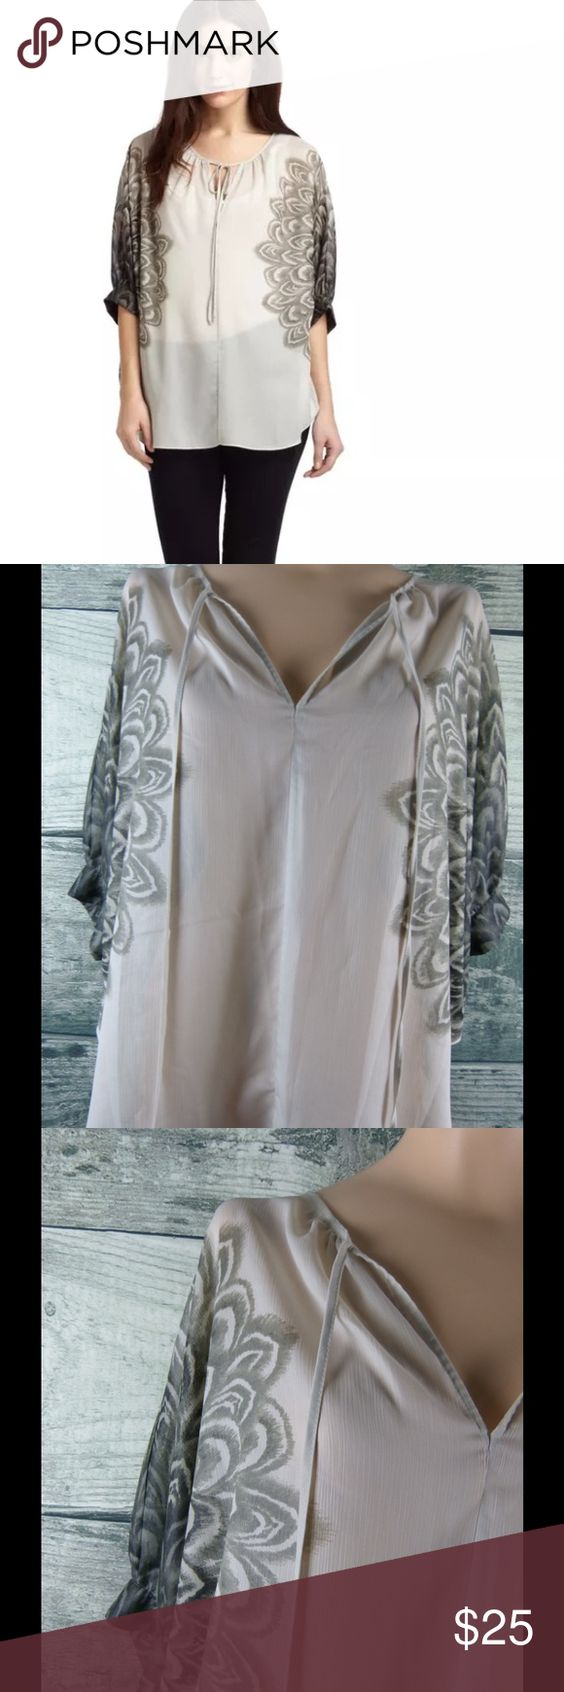 BCBG MAX AZRIA Fiona Dolman Blouse. Sz Small Condition: As new  Color: Gray  Fabric: 100% polyester  Loose fitting BCBGMaxAzria Tops Blouses